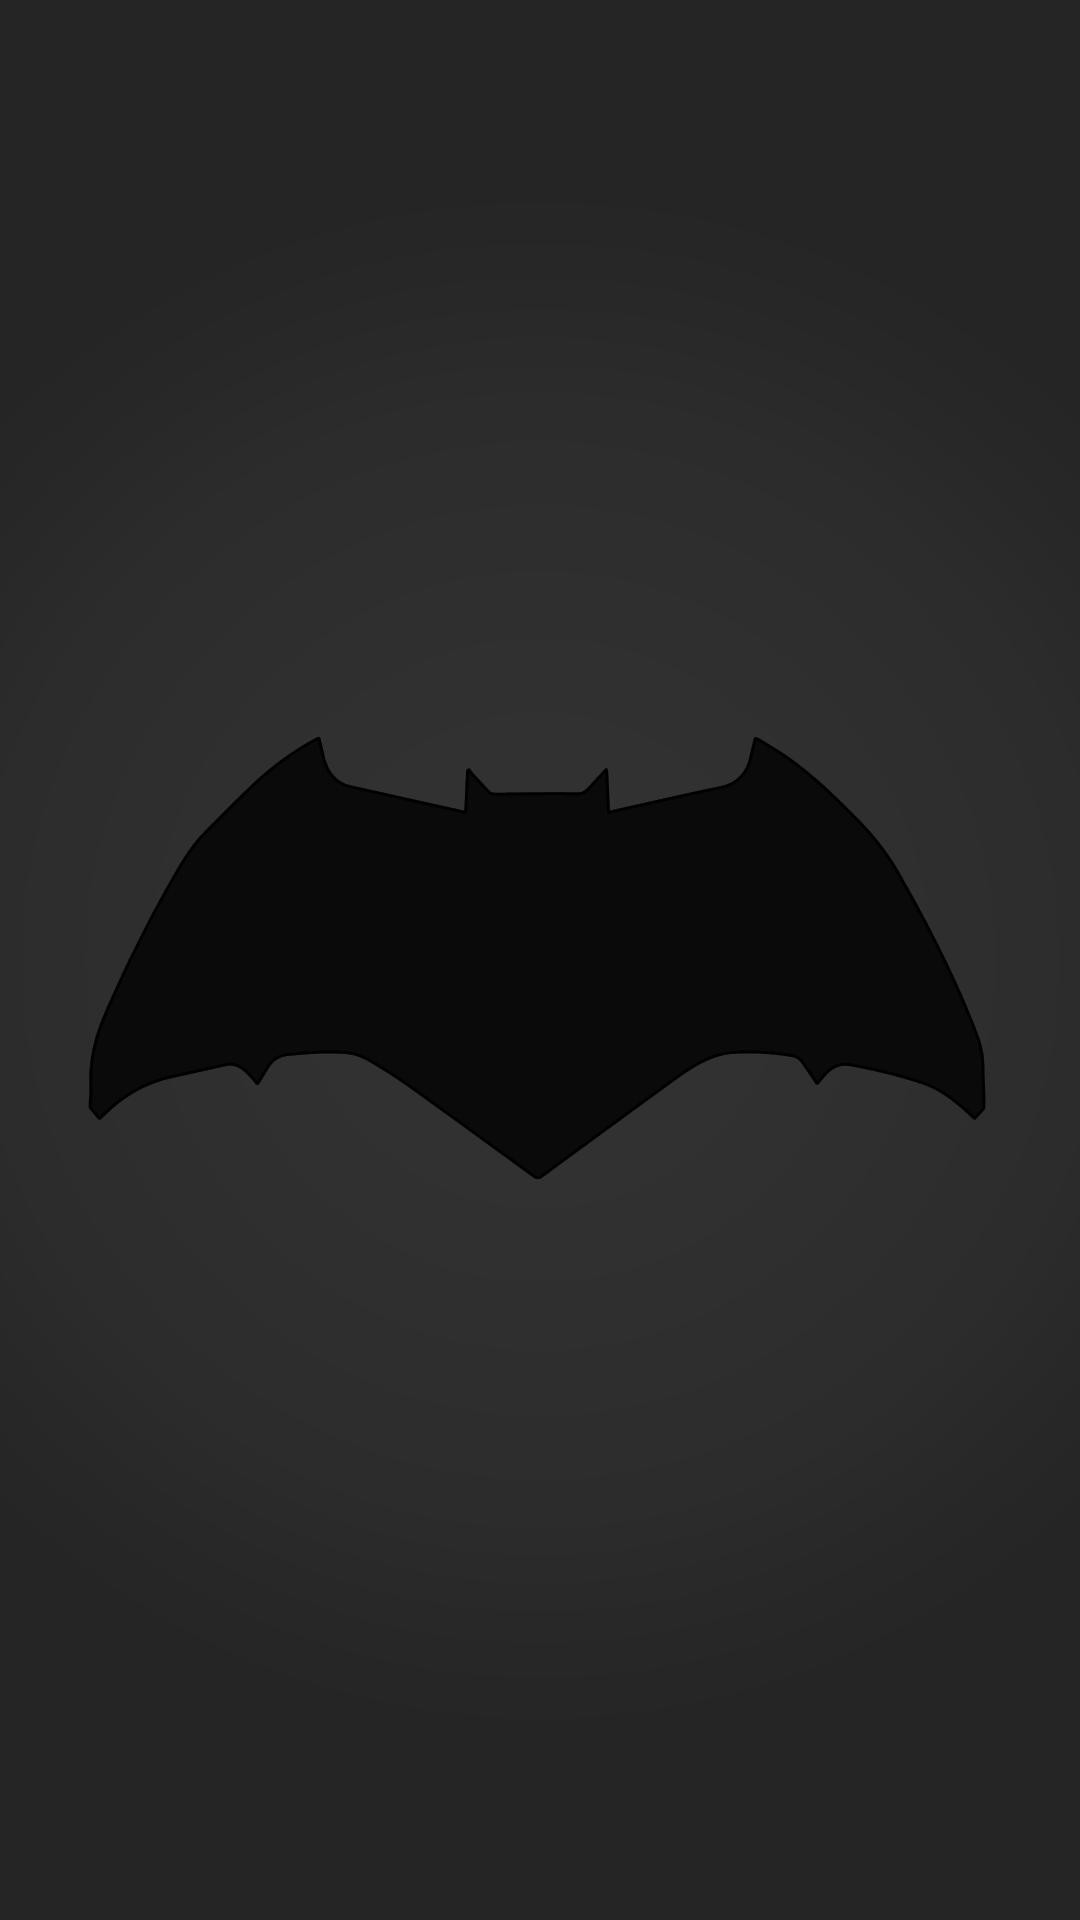 2560x1600 Batman Animated Series Wallpaper